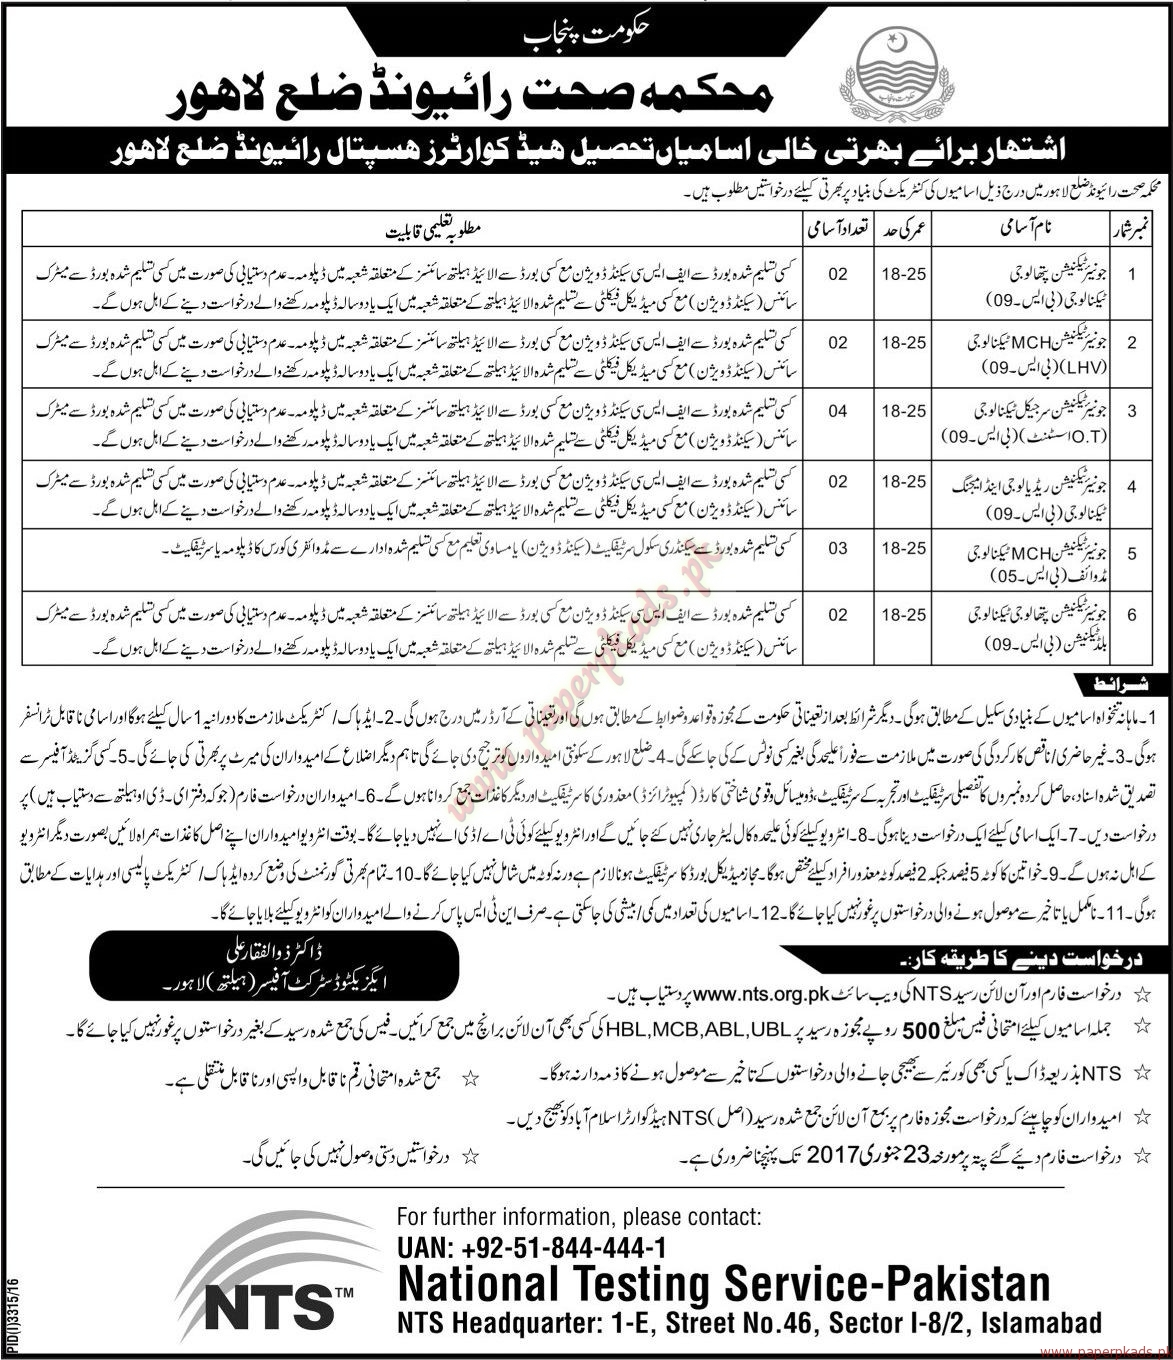 Health Department Lahore Jobs - Jang Jobs ads 01 January 2017